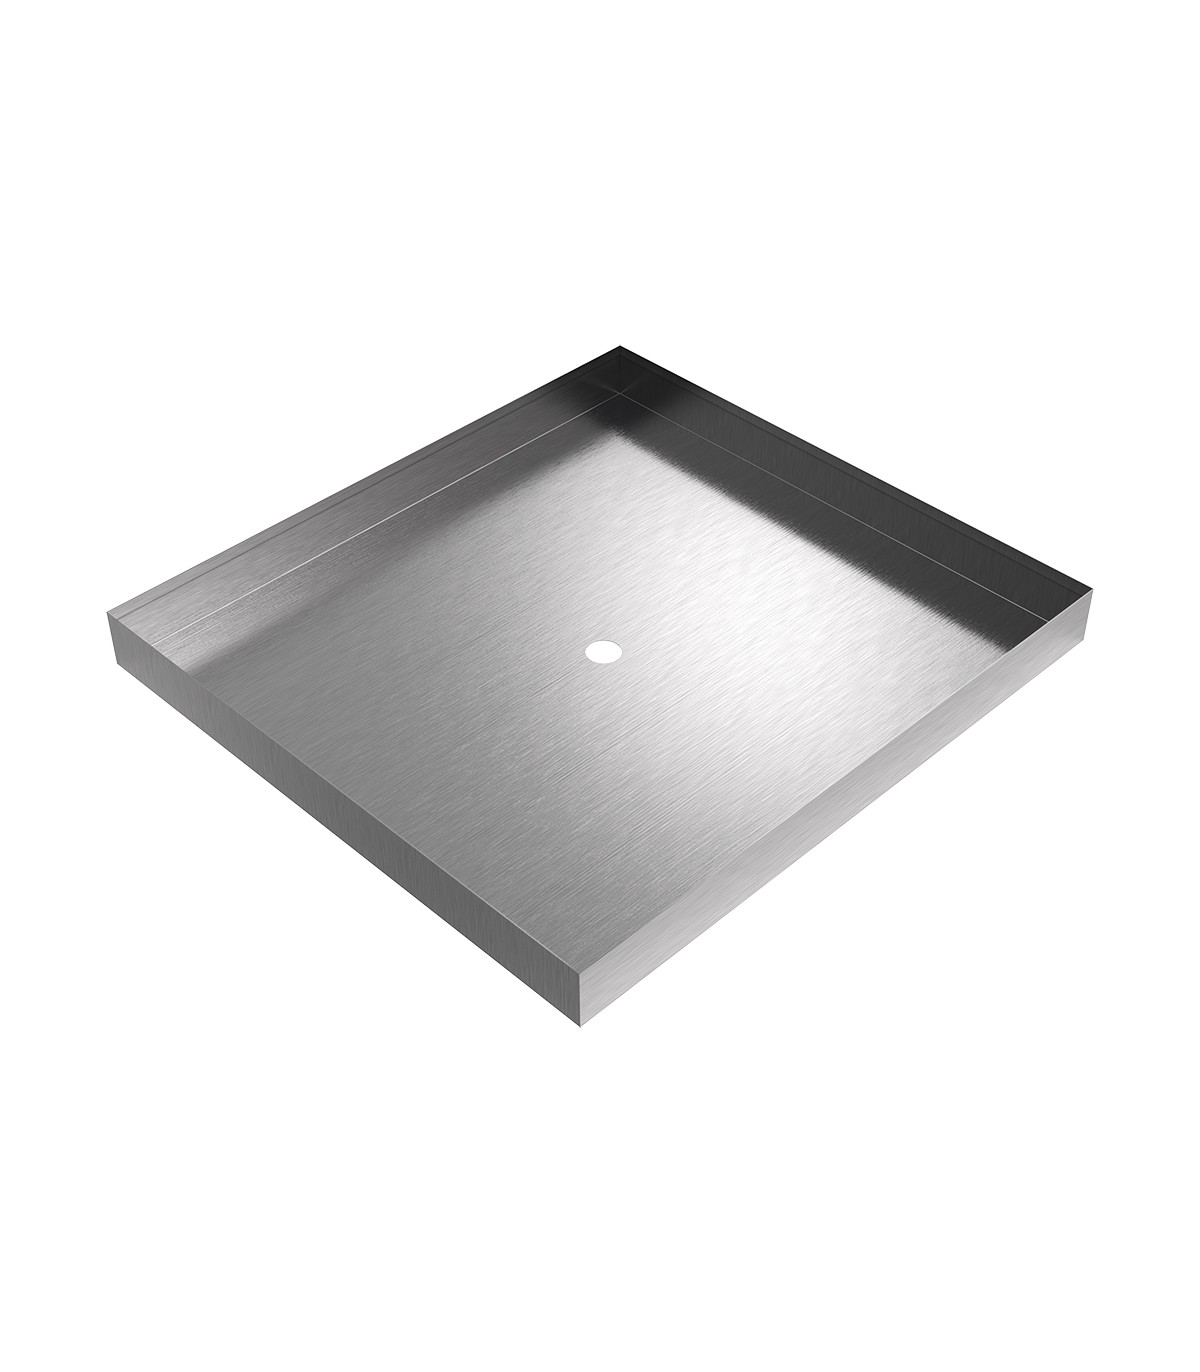 Stainless Ice Maker Drain Pan